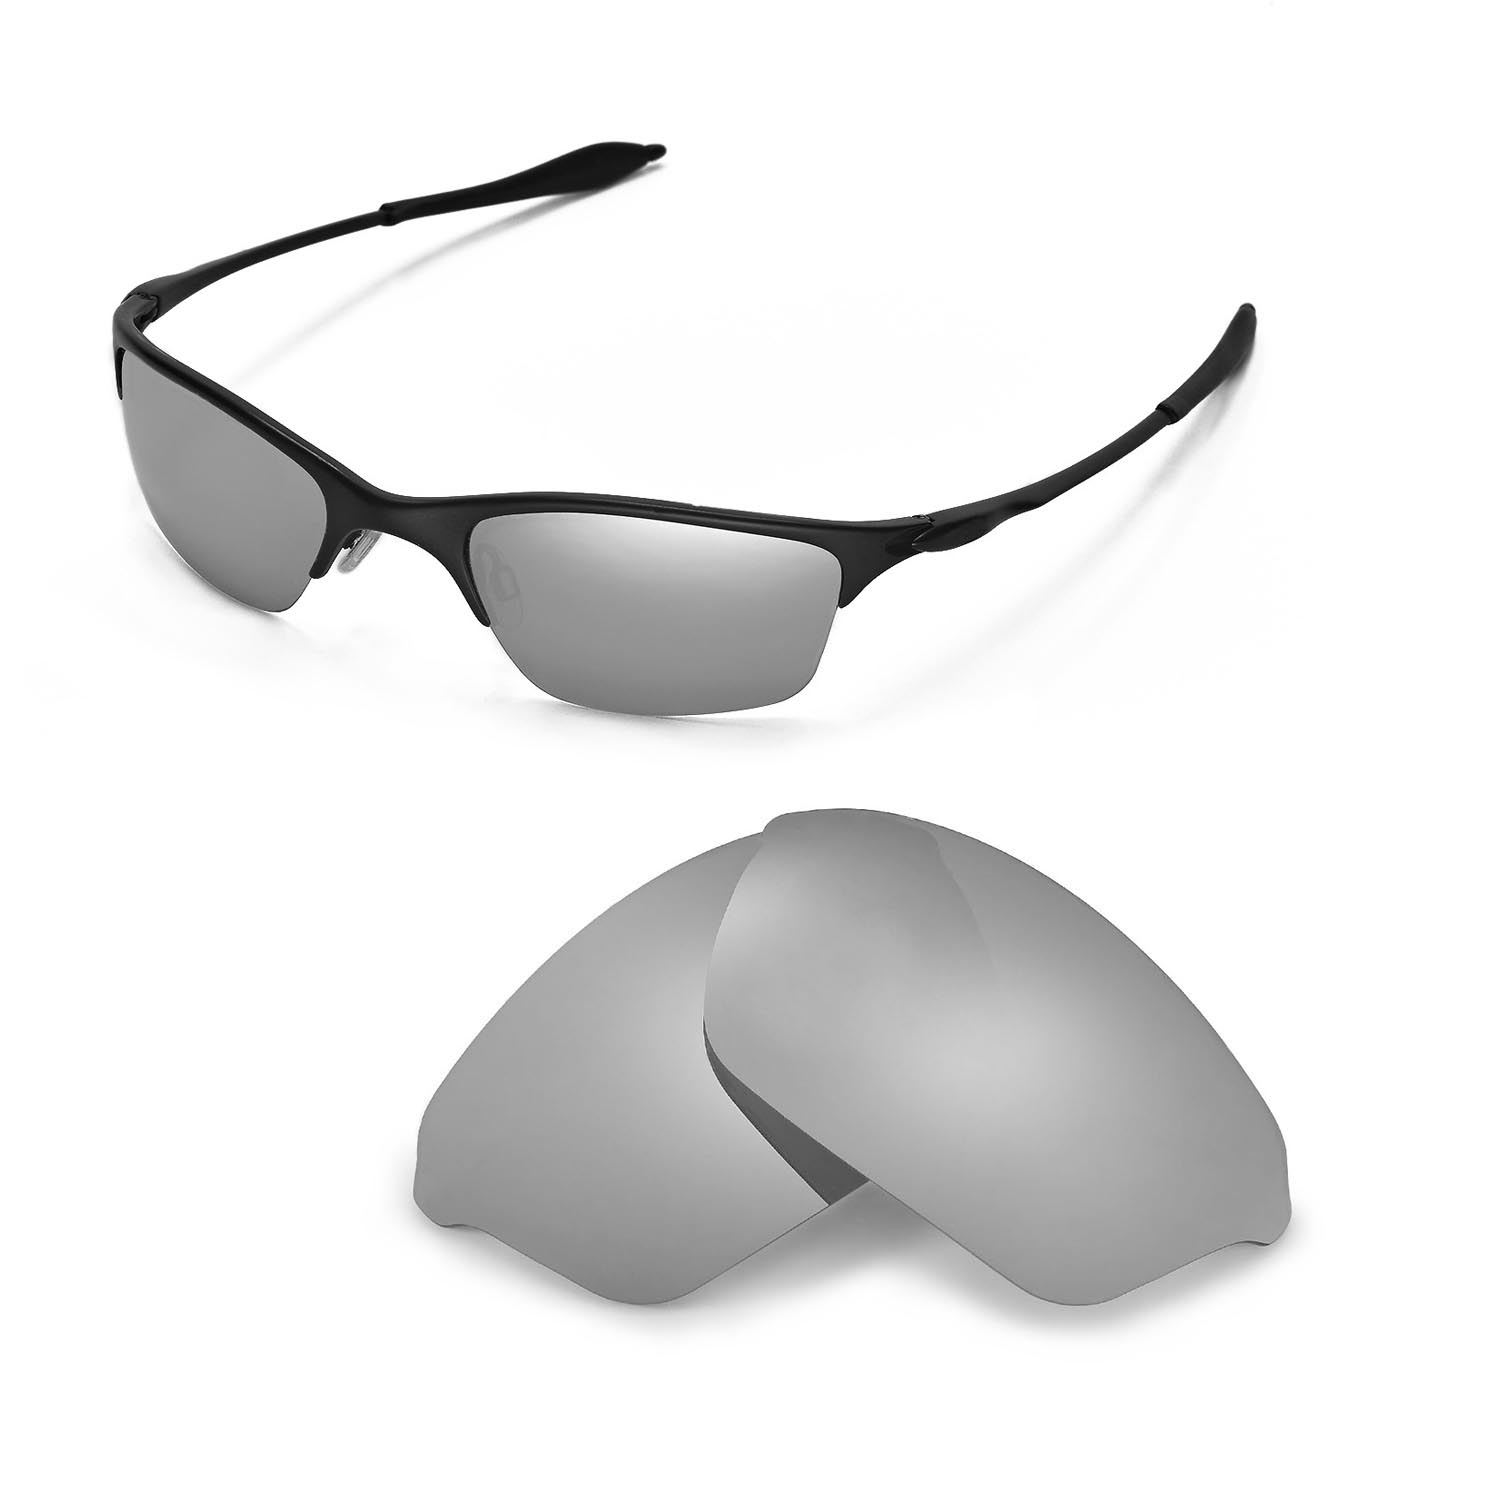 Oakley Sunglasses Replacement Lenses